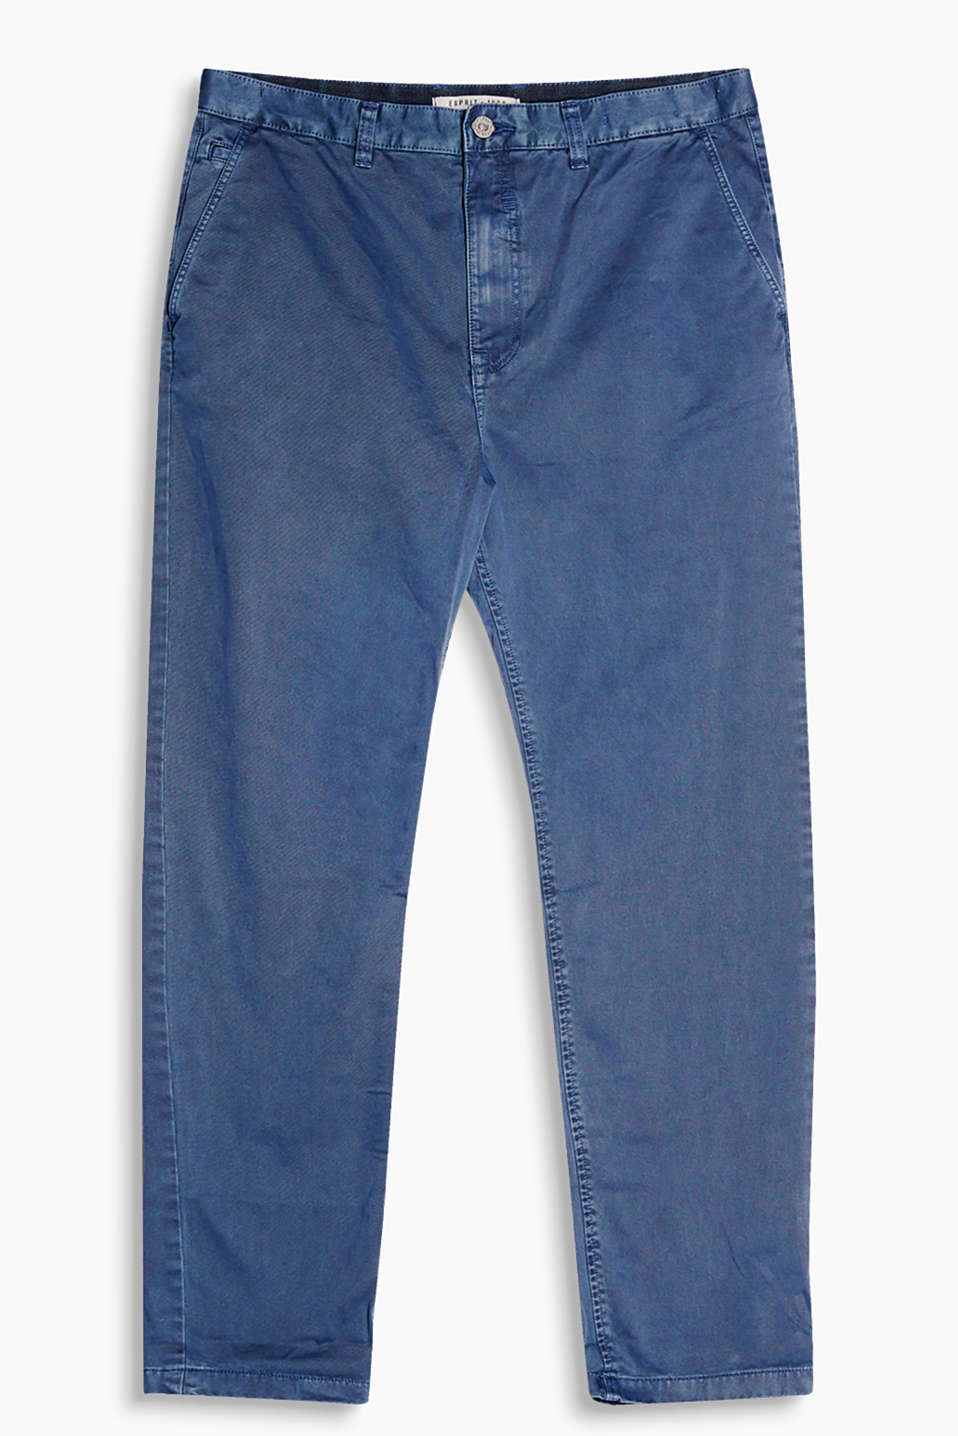 Trousers with striking vintage garment-washed effects, made of smooth cotton twill